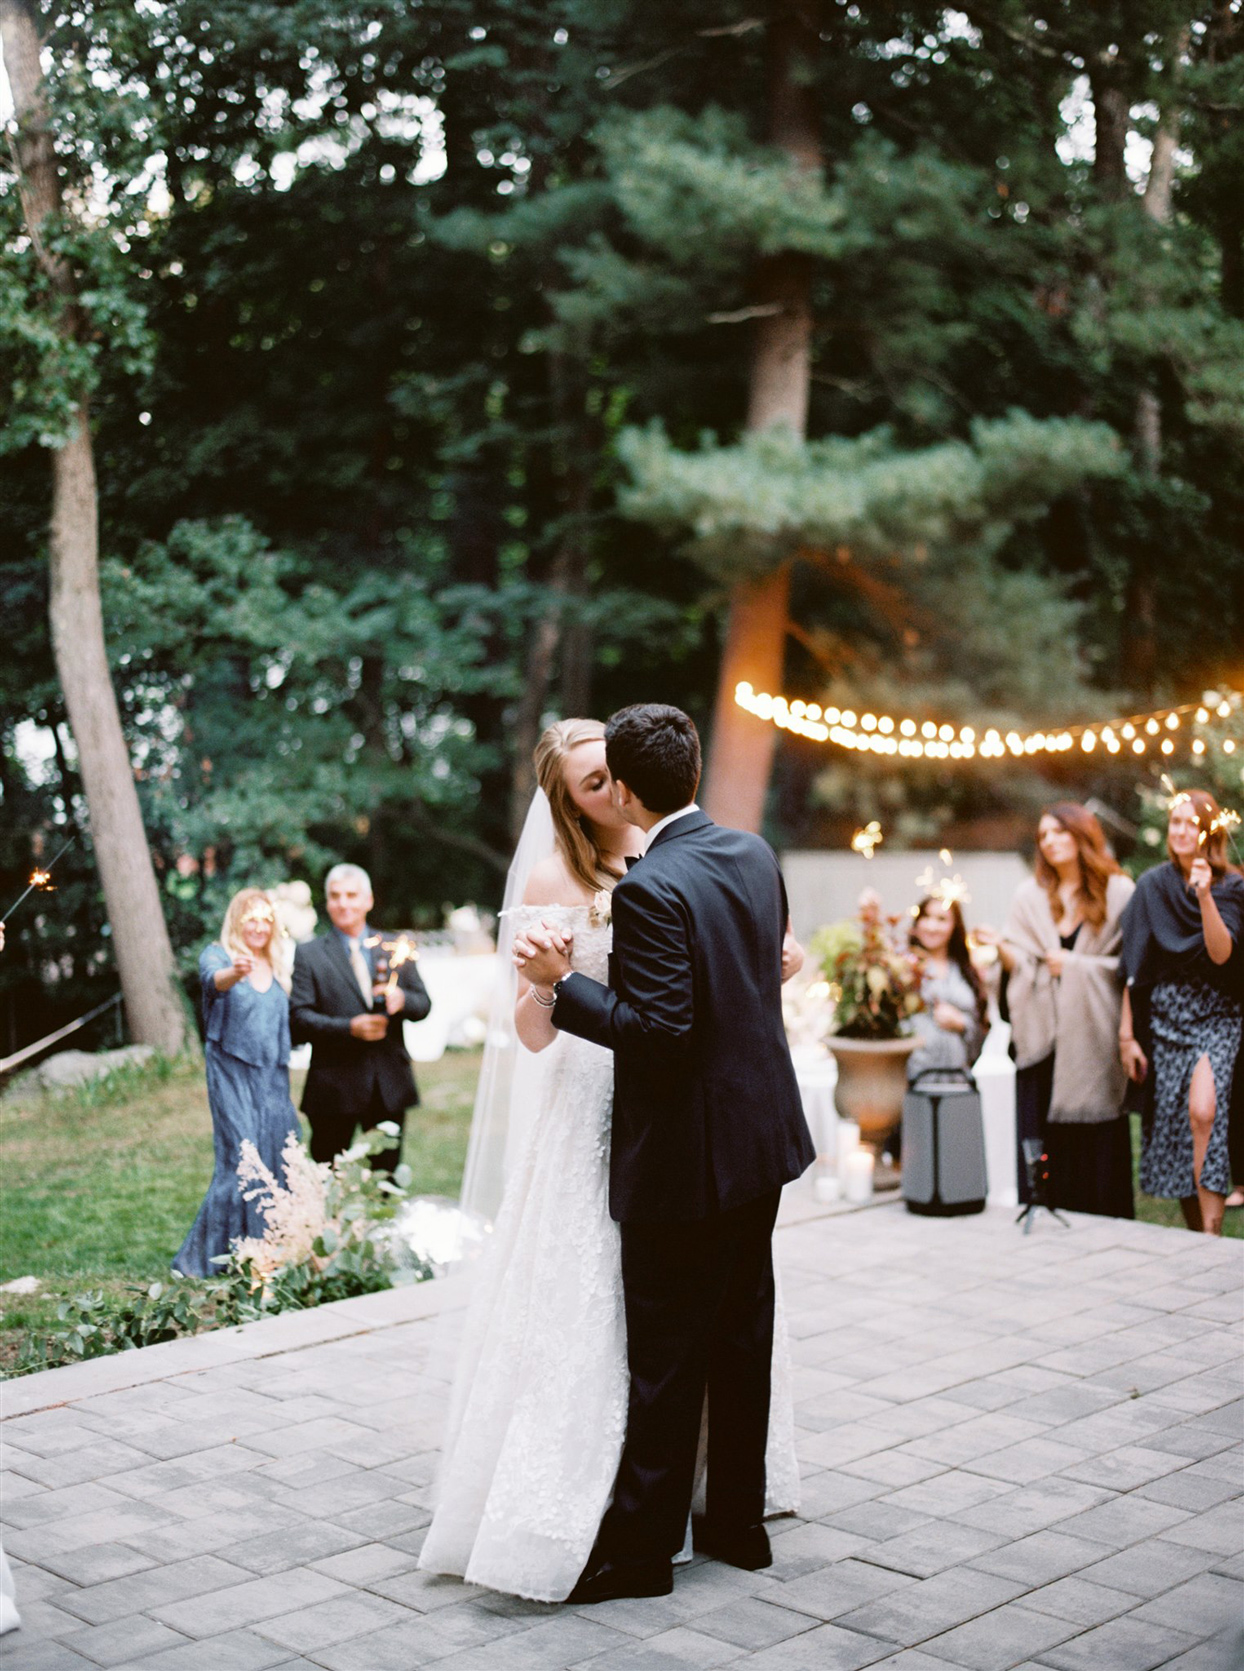 Bride and groom first dance on patio